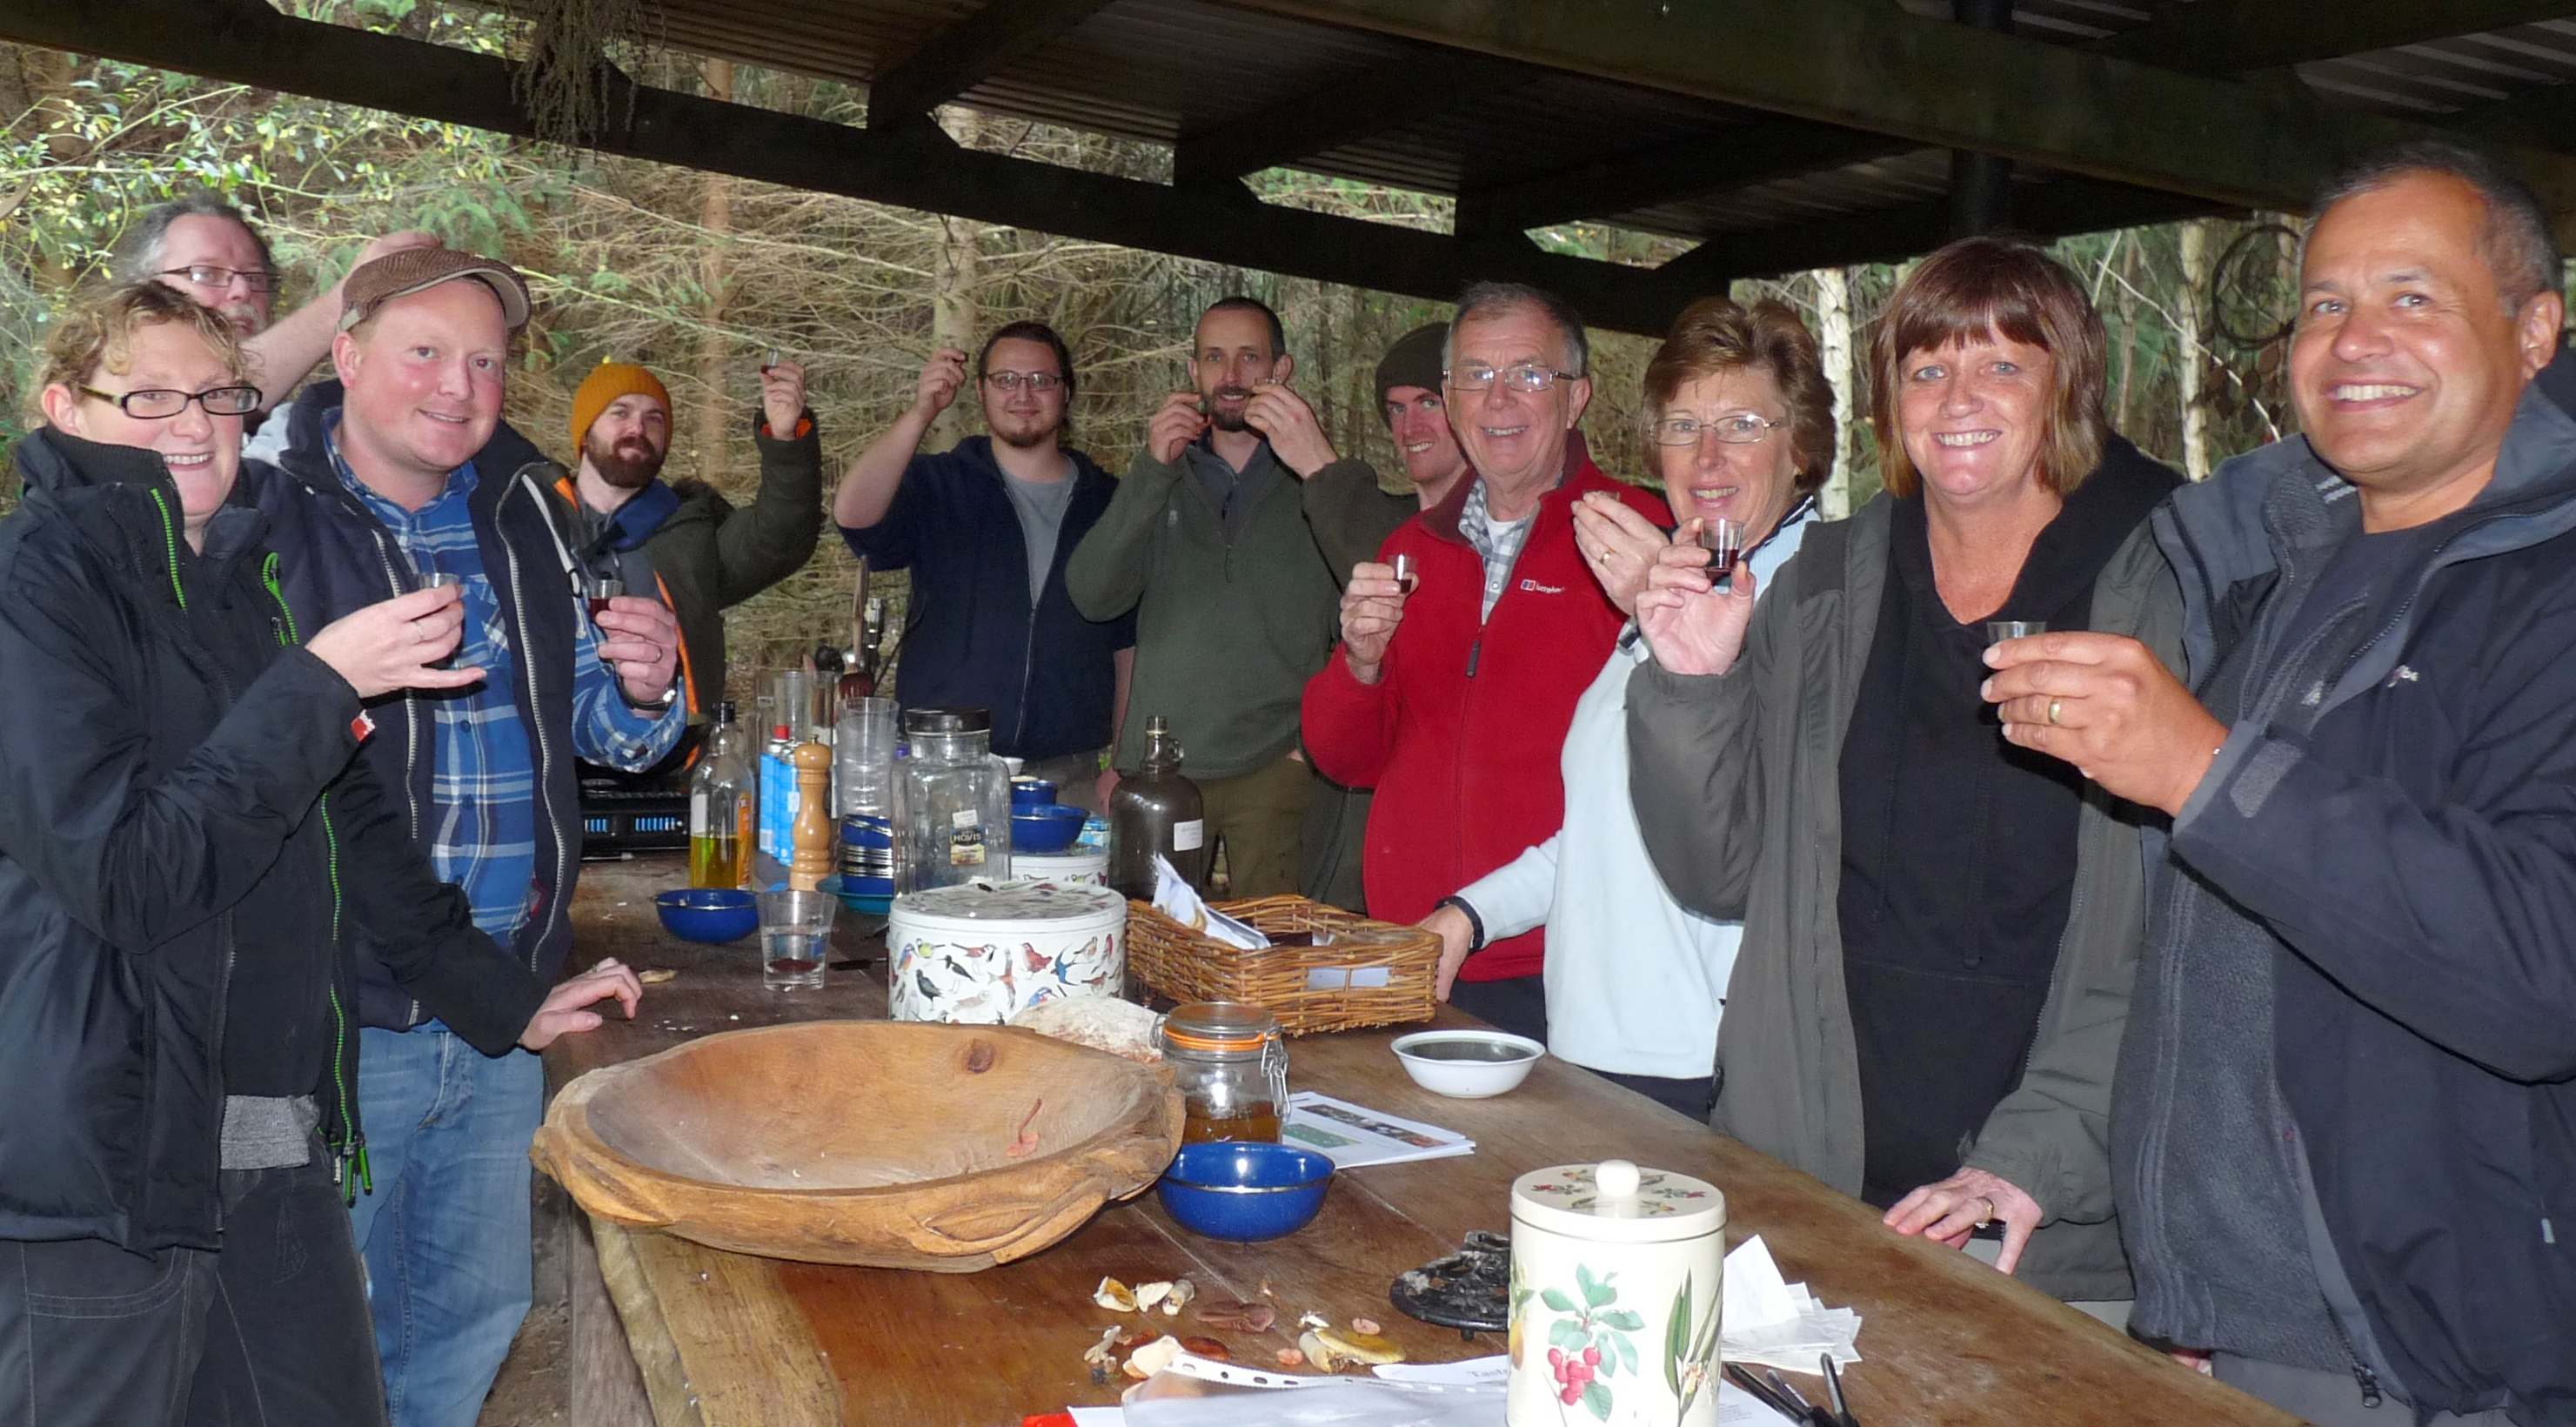 The participants raised a glass of Hedgerow Vodka